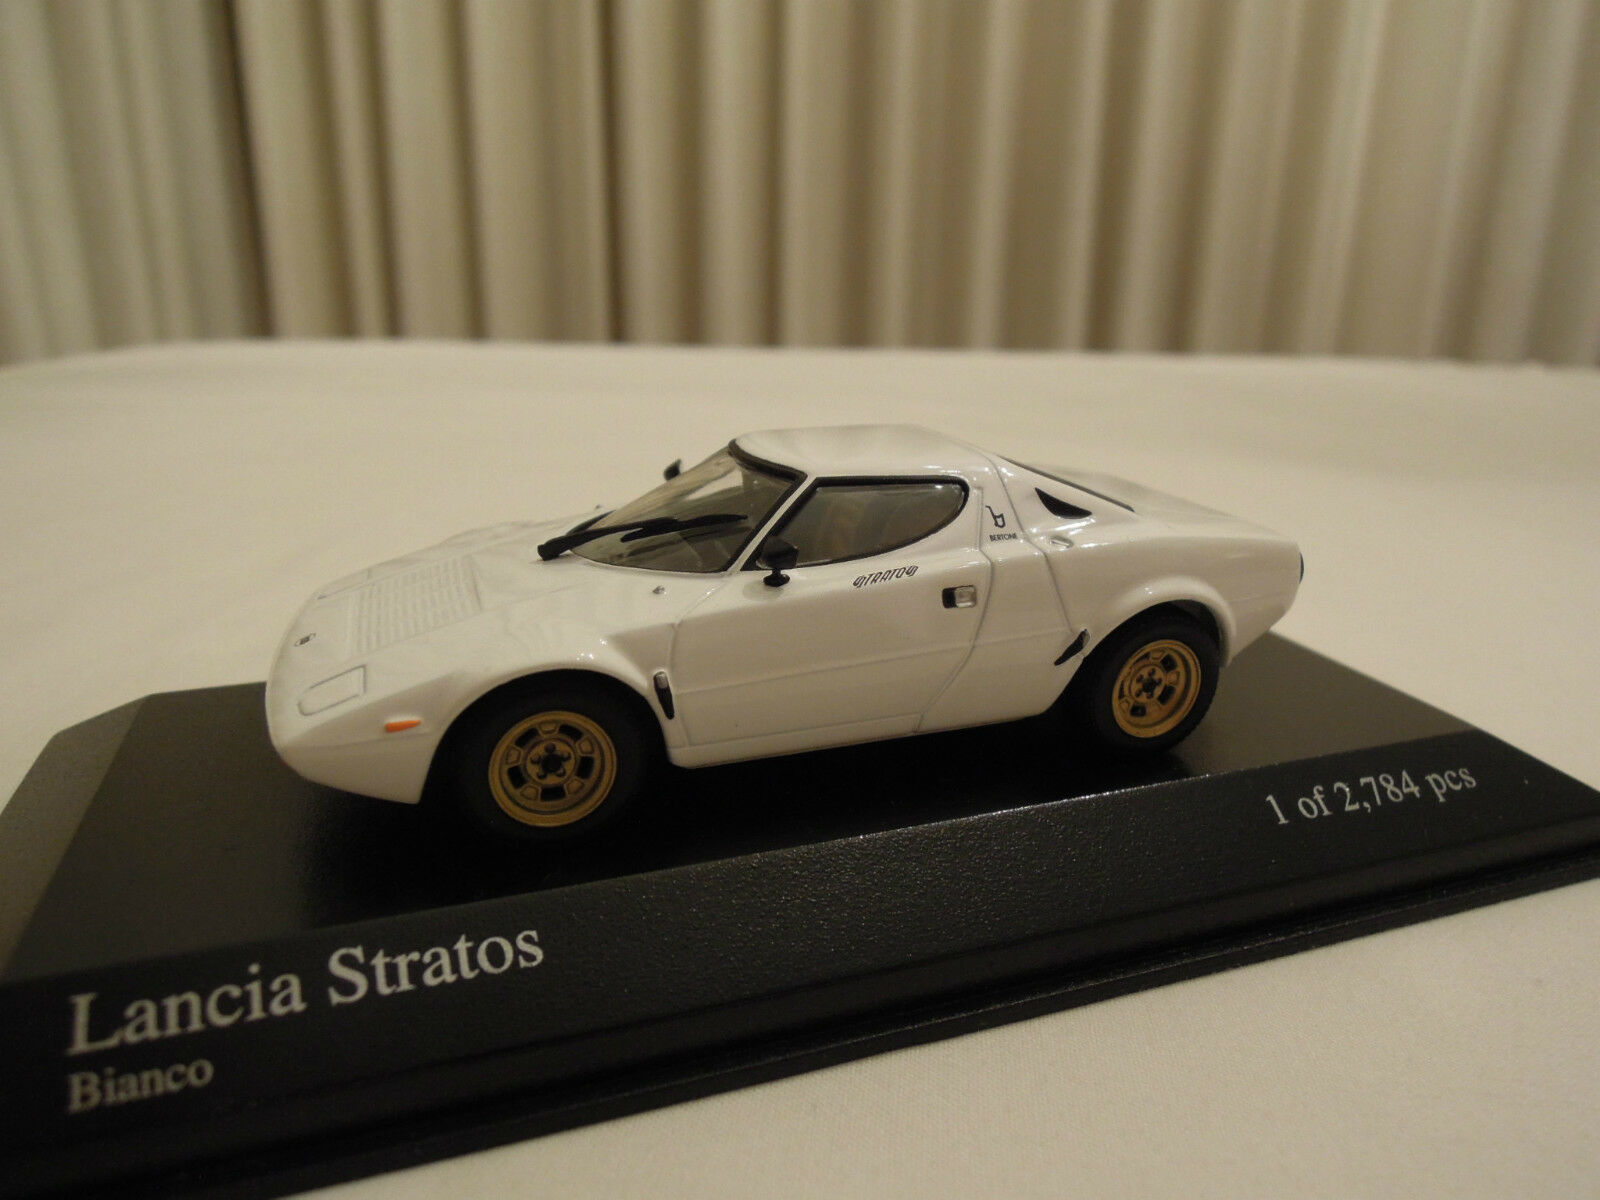 Minichamps Lancia Stratos White 1 43 Ltd. Edition New in Box Ships From USA